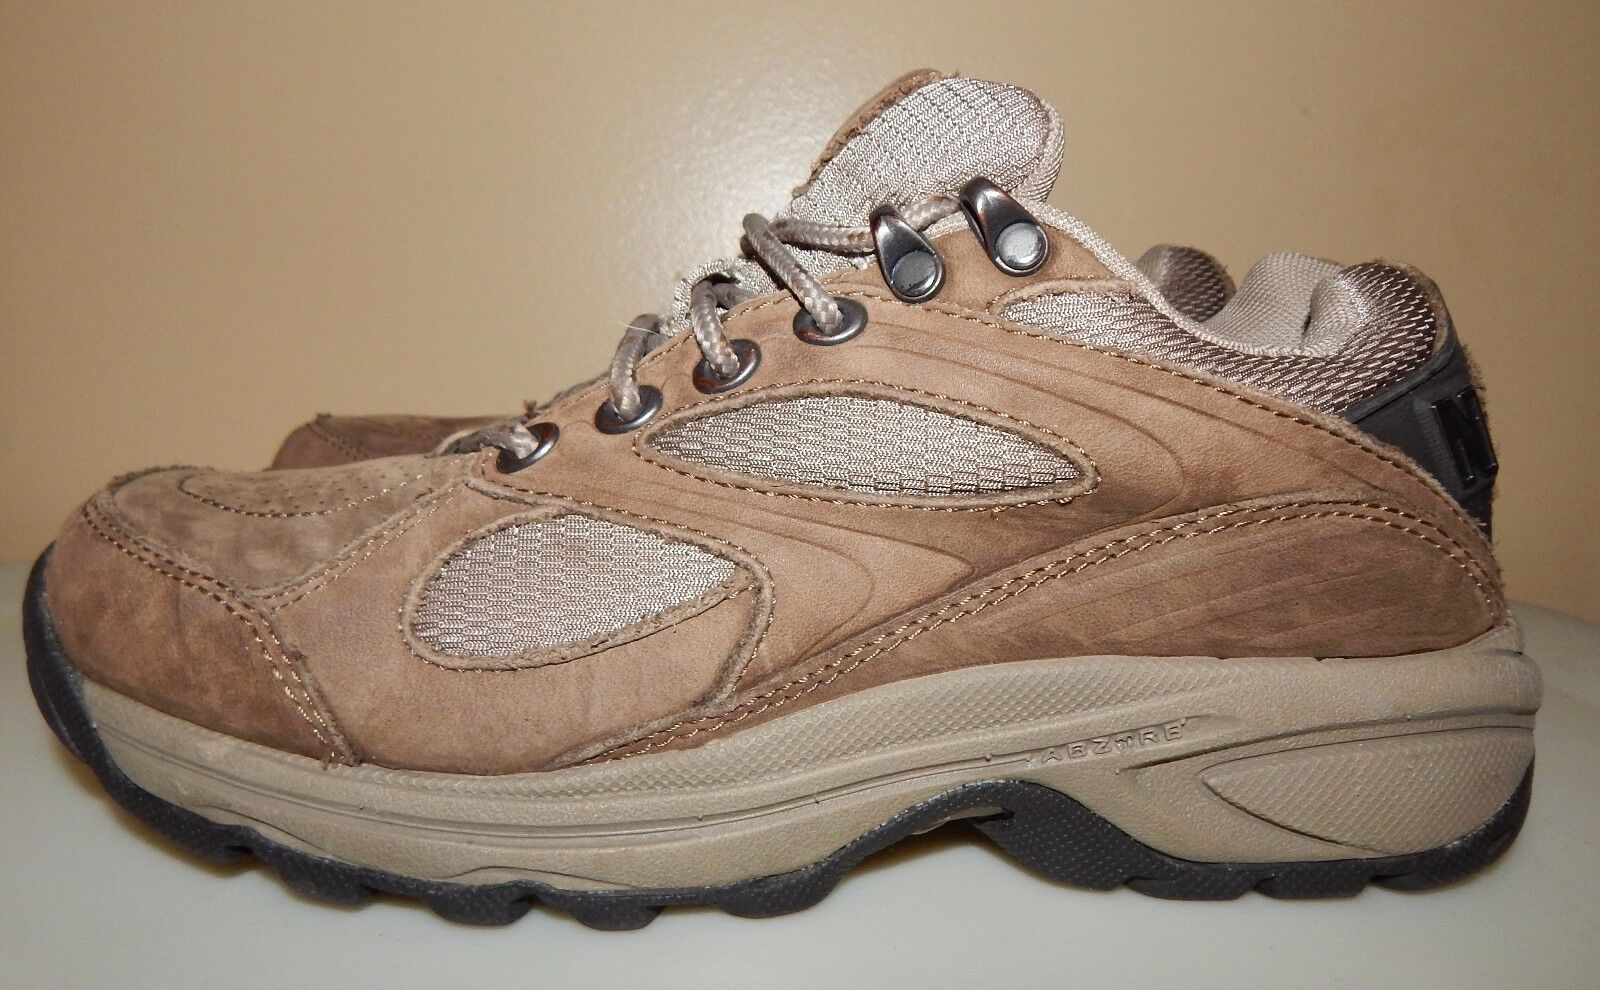 New Balance WW780BR 780 Trekking Hiking Trail Athletic Sneakers Women's US 7B